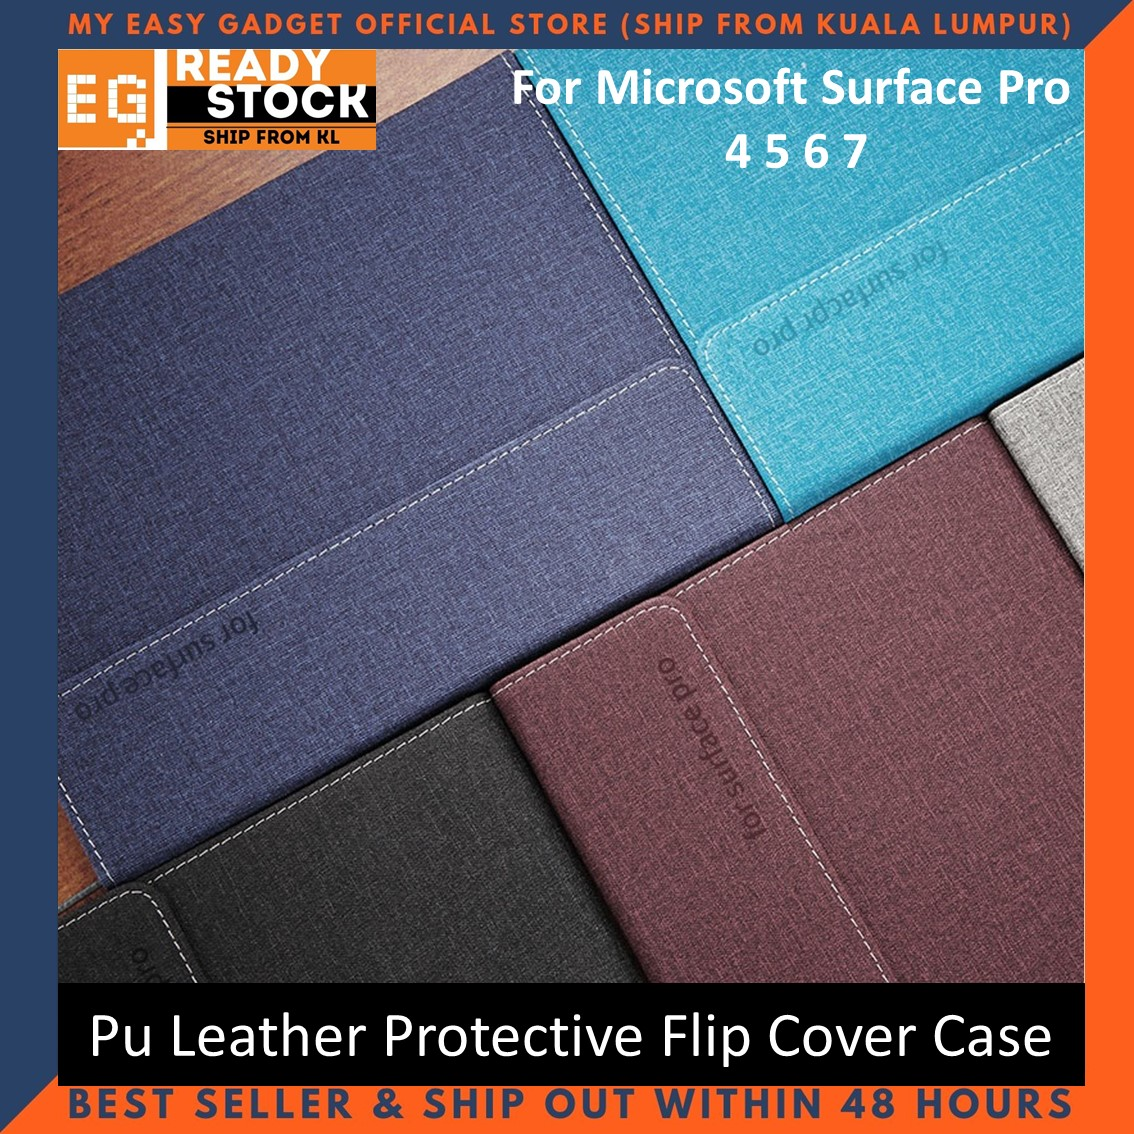 Microsoft Surface Pro 7 6 5 4 Flip Cover Case 12.3\'\'inch Pu Leather Honeycomb Pattern Pc Hard Shell Protective Tablet Case